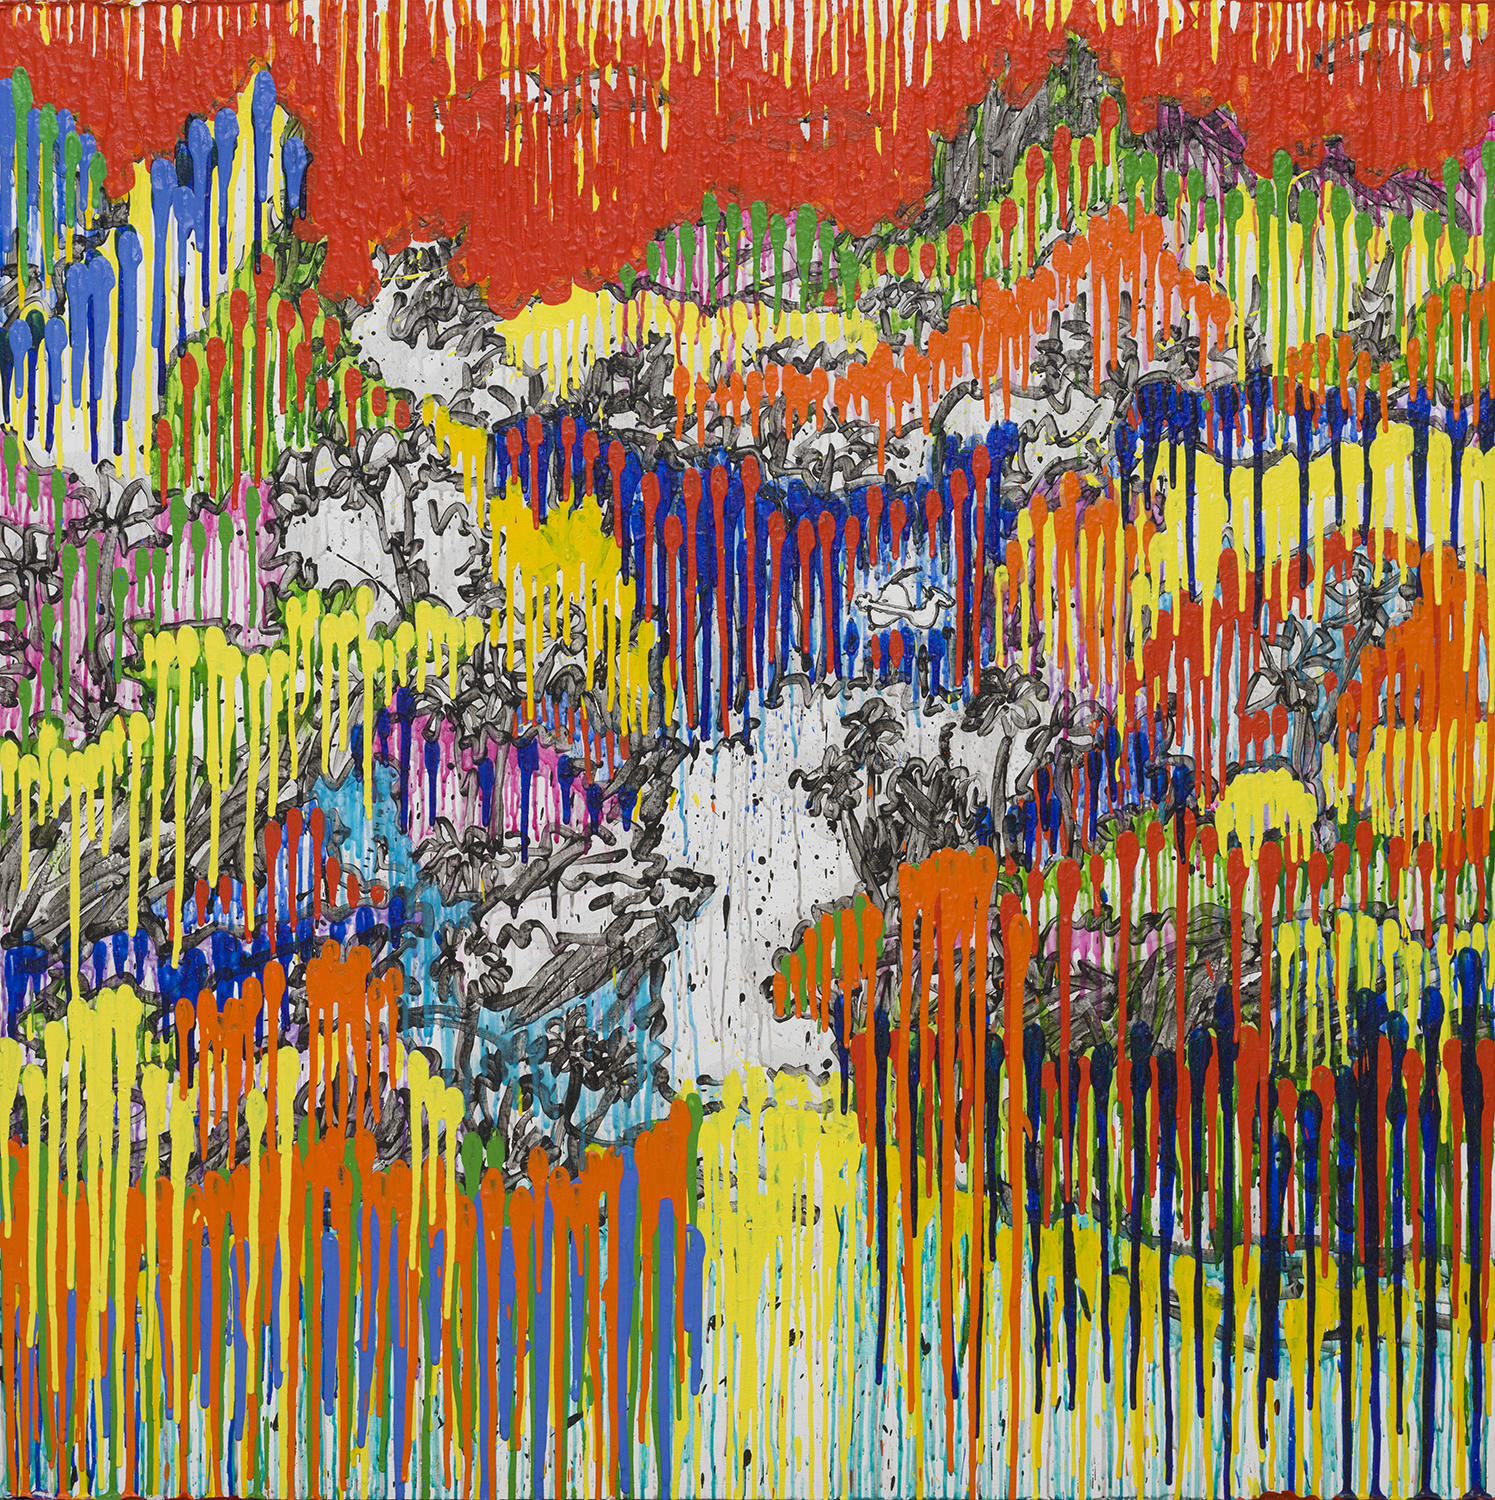 Ancient Chinese Secret–Day (Taha'a)   acrylic and varnish on wood panel   64″ x 164″   2010-2013